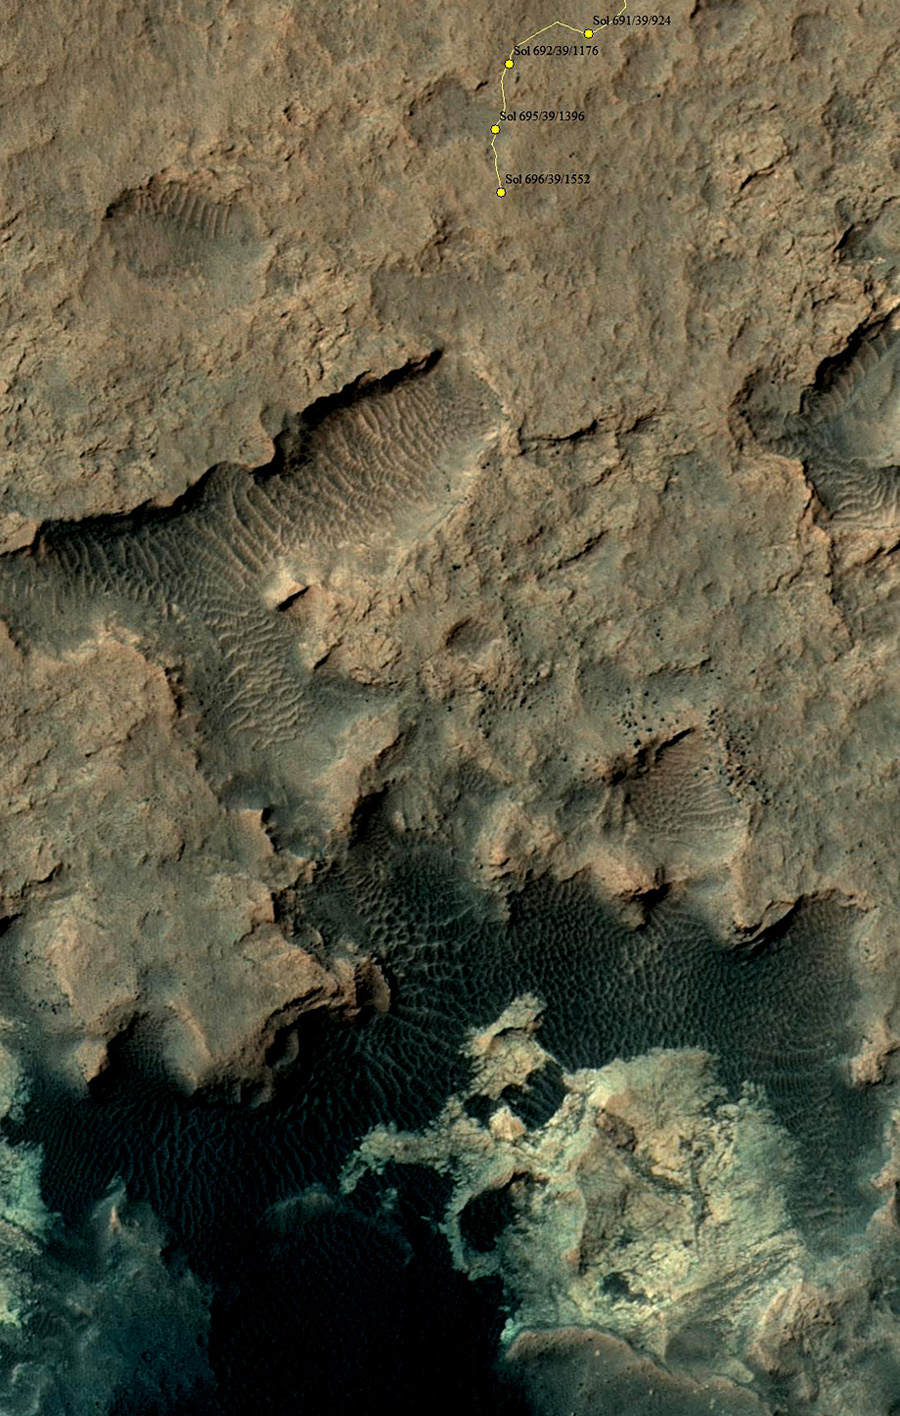 Curiosity_Location_Sol0696